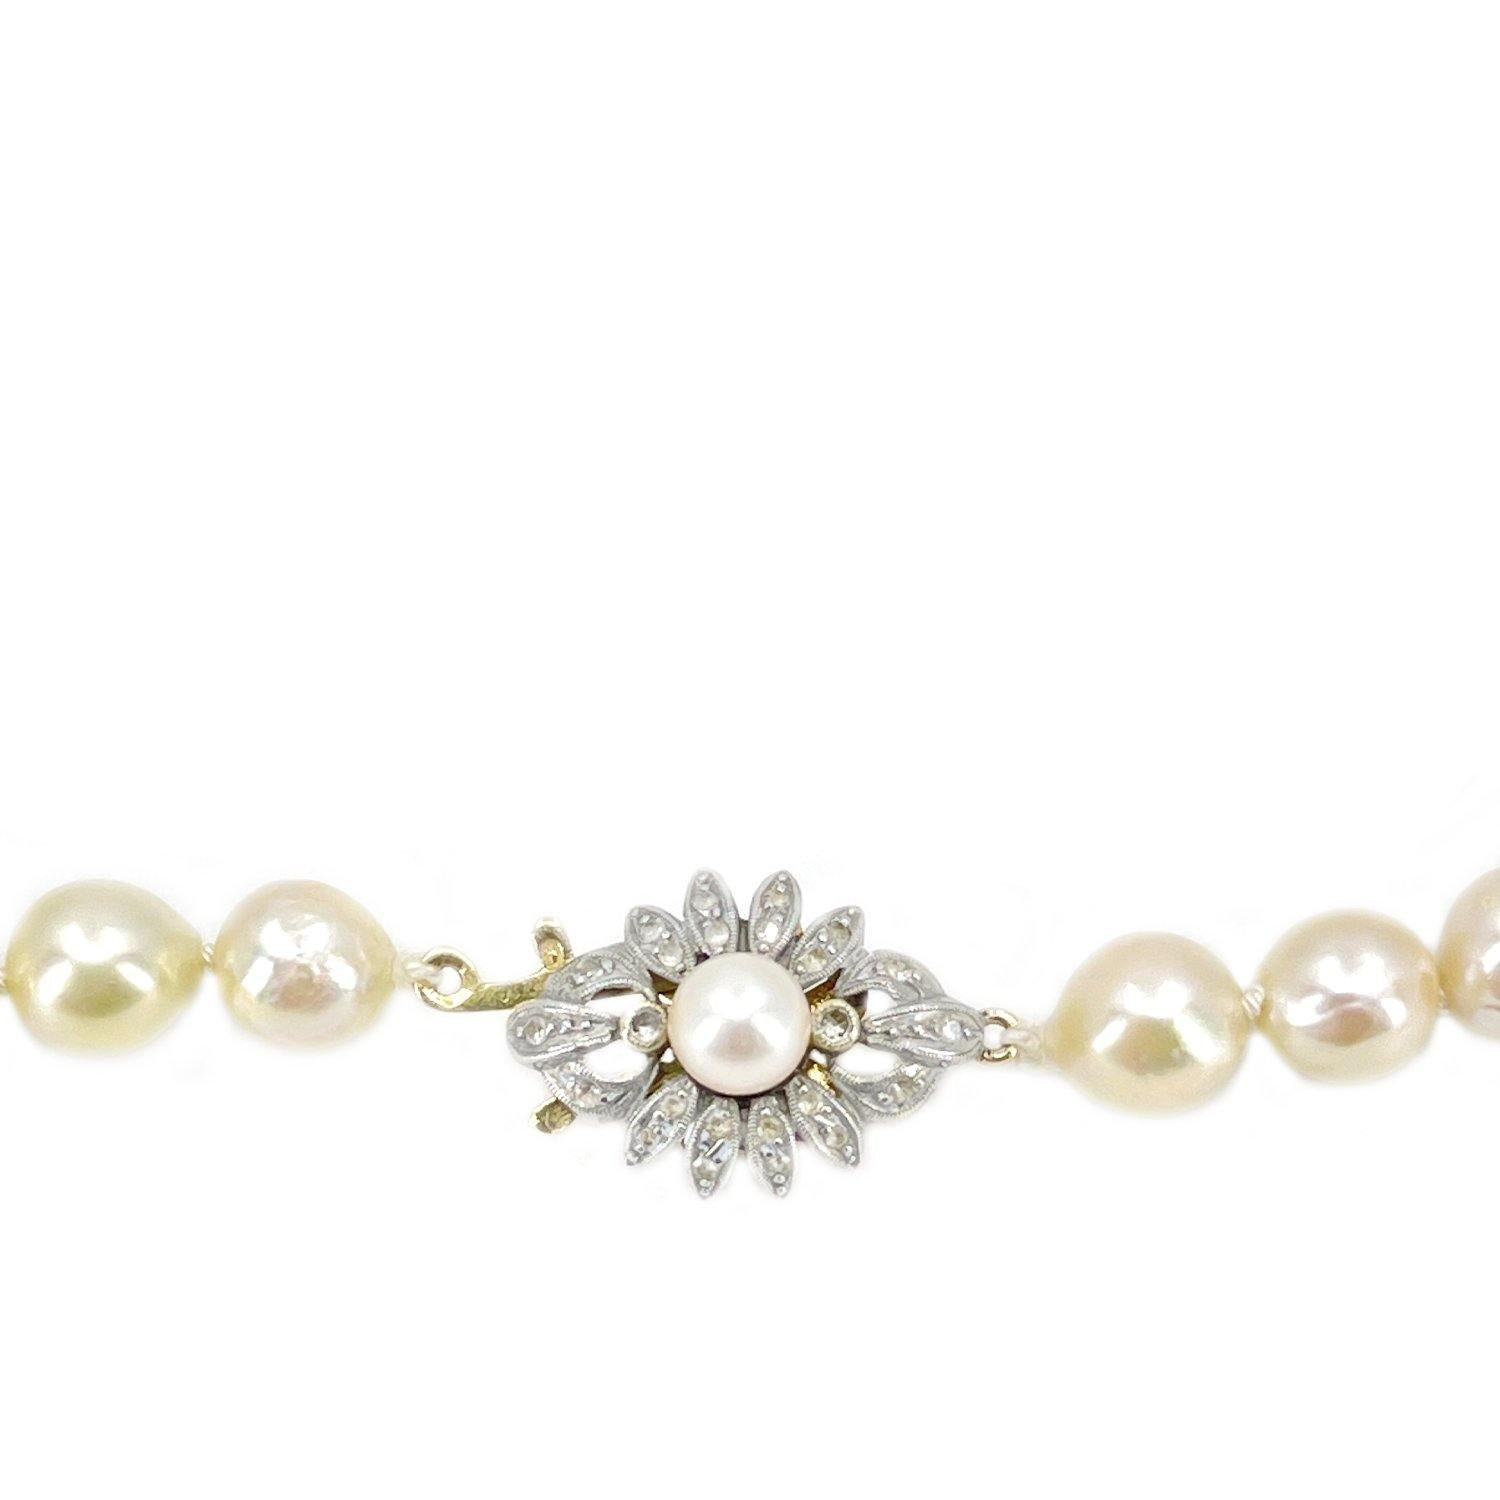 Victorian Star Burst Japanese Saltwater Cultured Akoya Pearl Strand - 14K Yellow Gold Silver 18.50 Inch